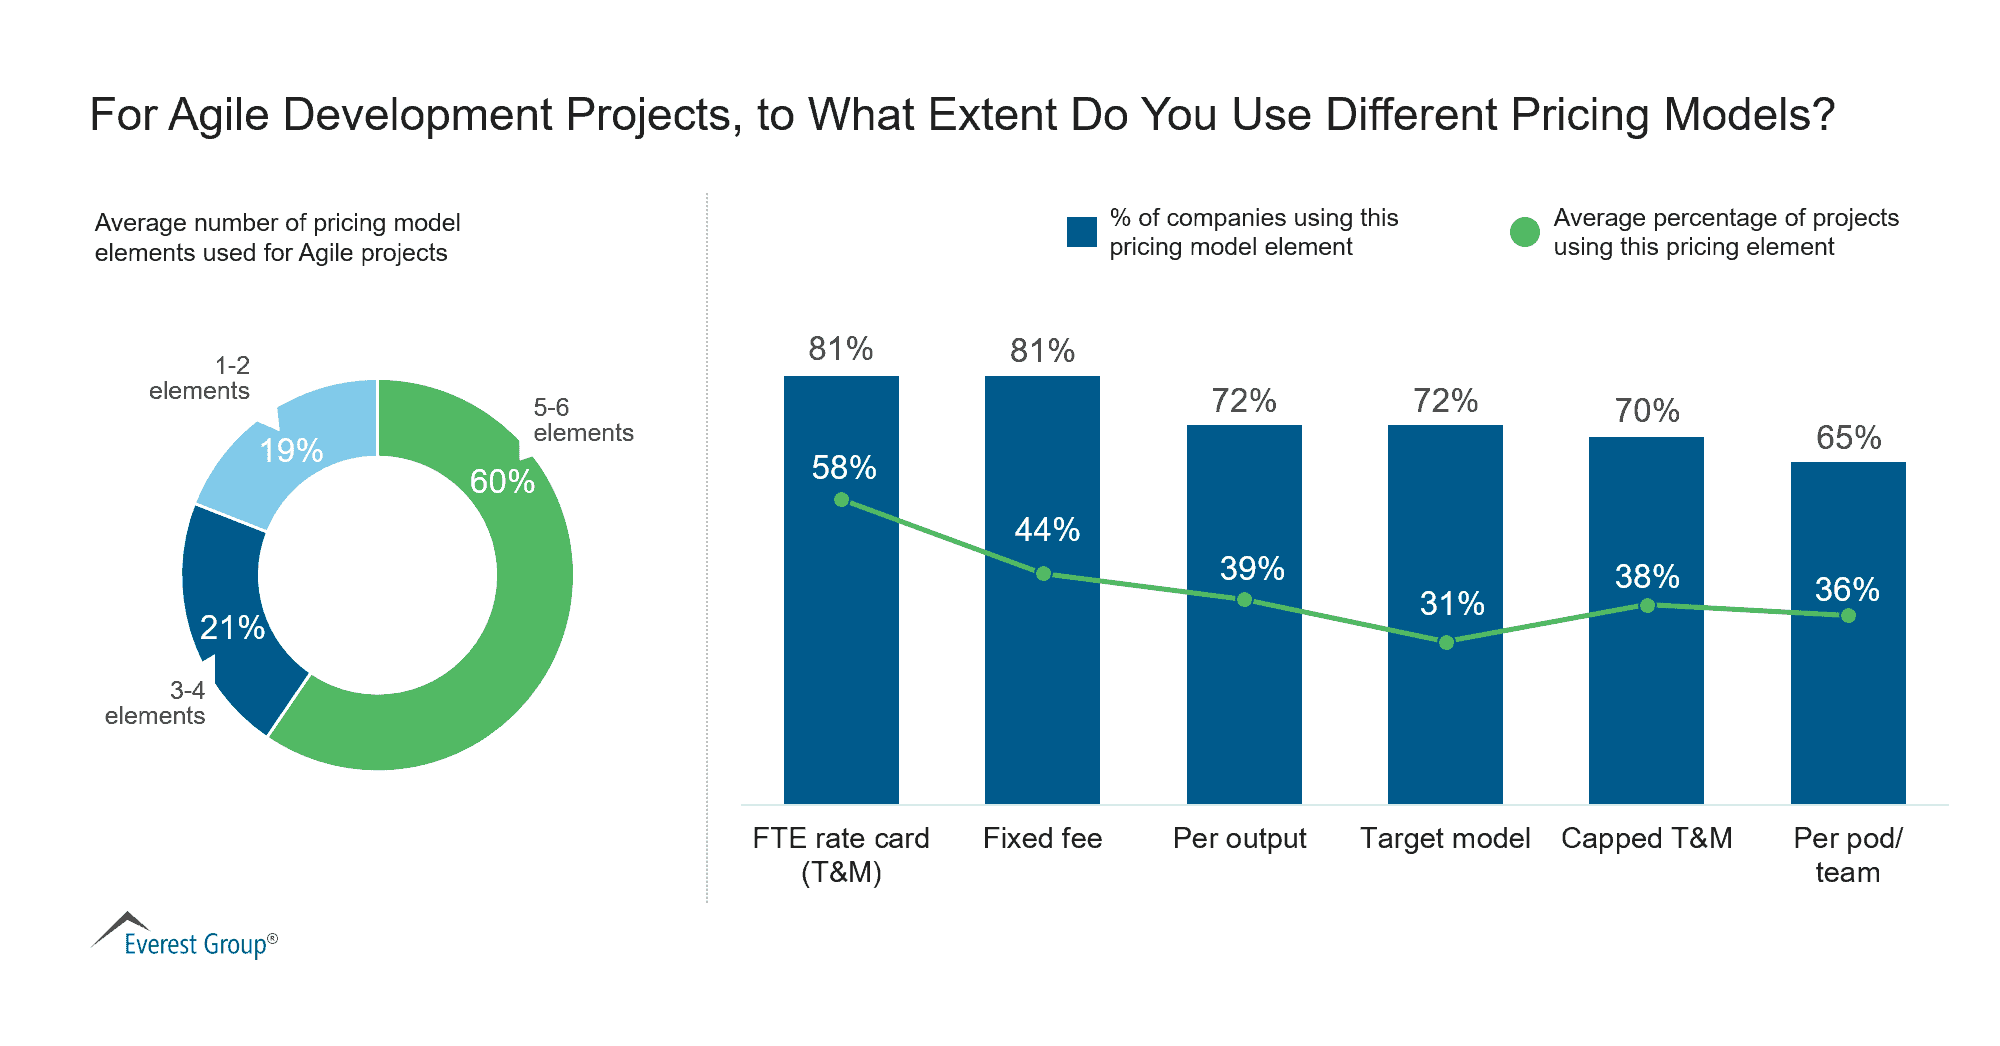 For Agile Development Projects to What Extent Do You Use Different Pricing Models